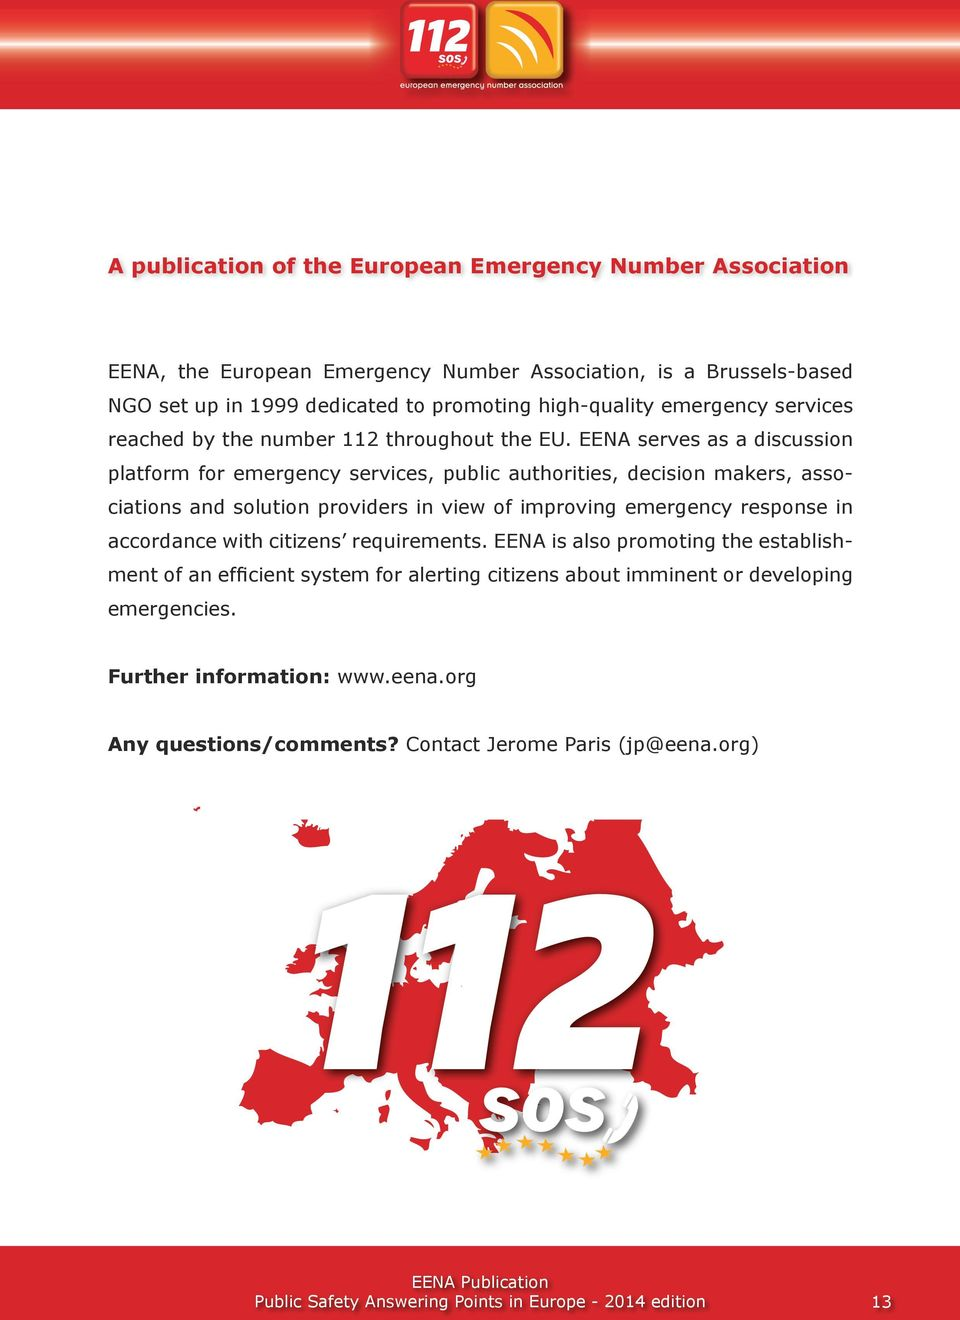 EENA serves as a discussion platform for emergency services, public authorities, decision makers, associations and solution providers in view of improving emergency response in